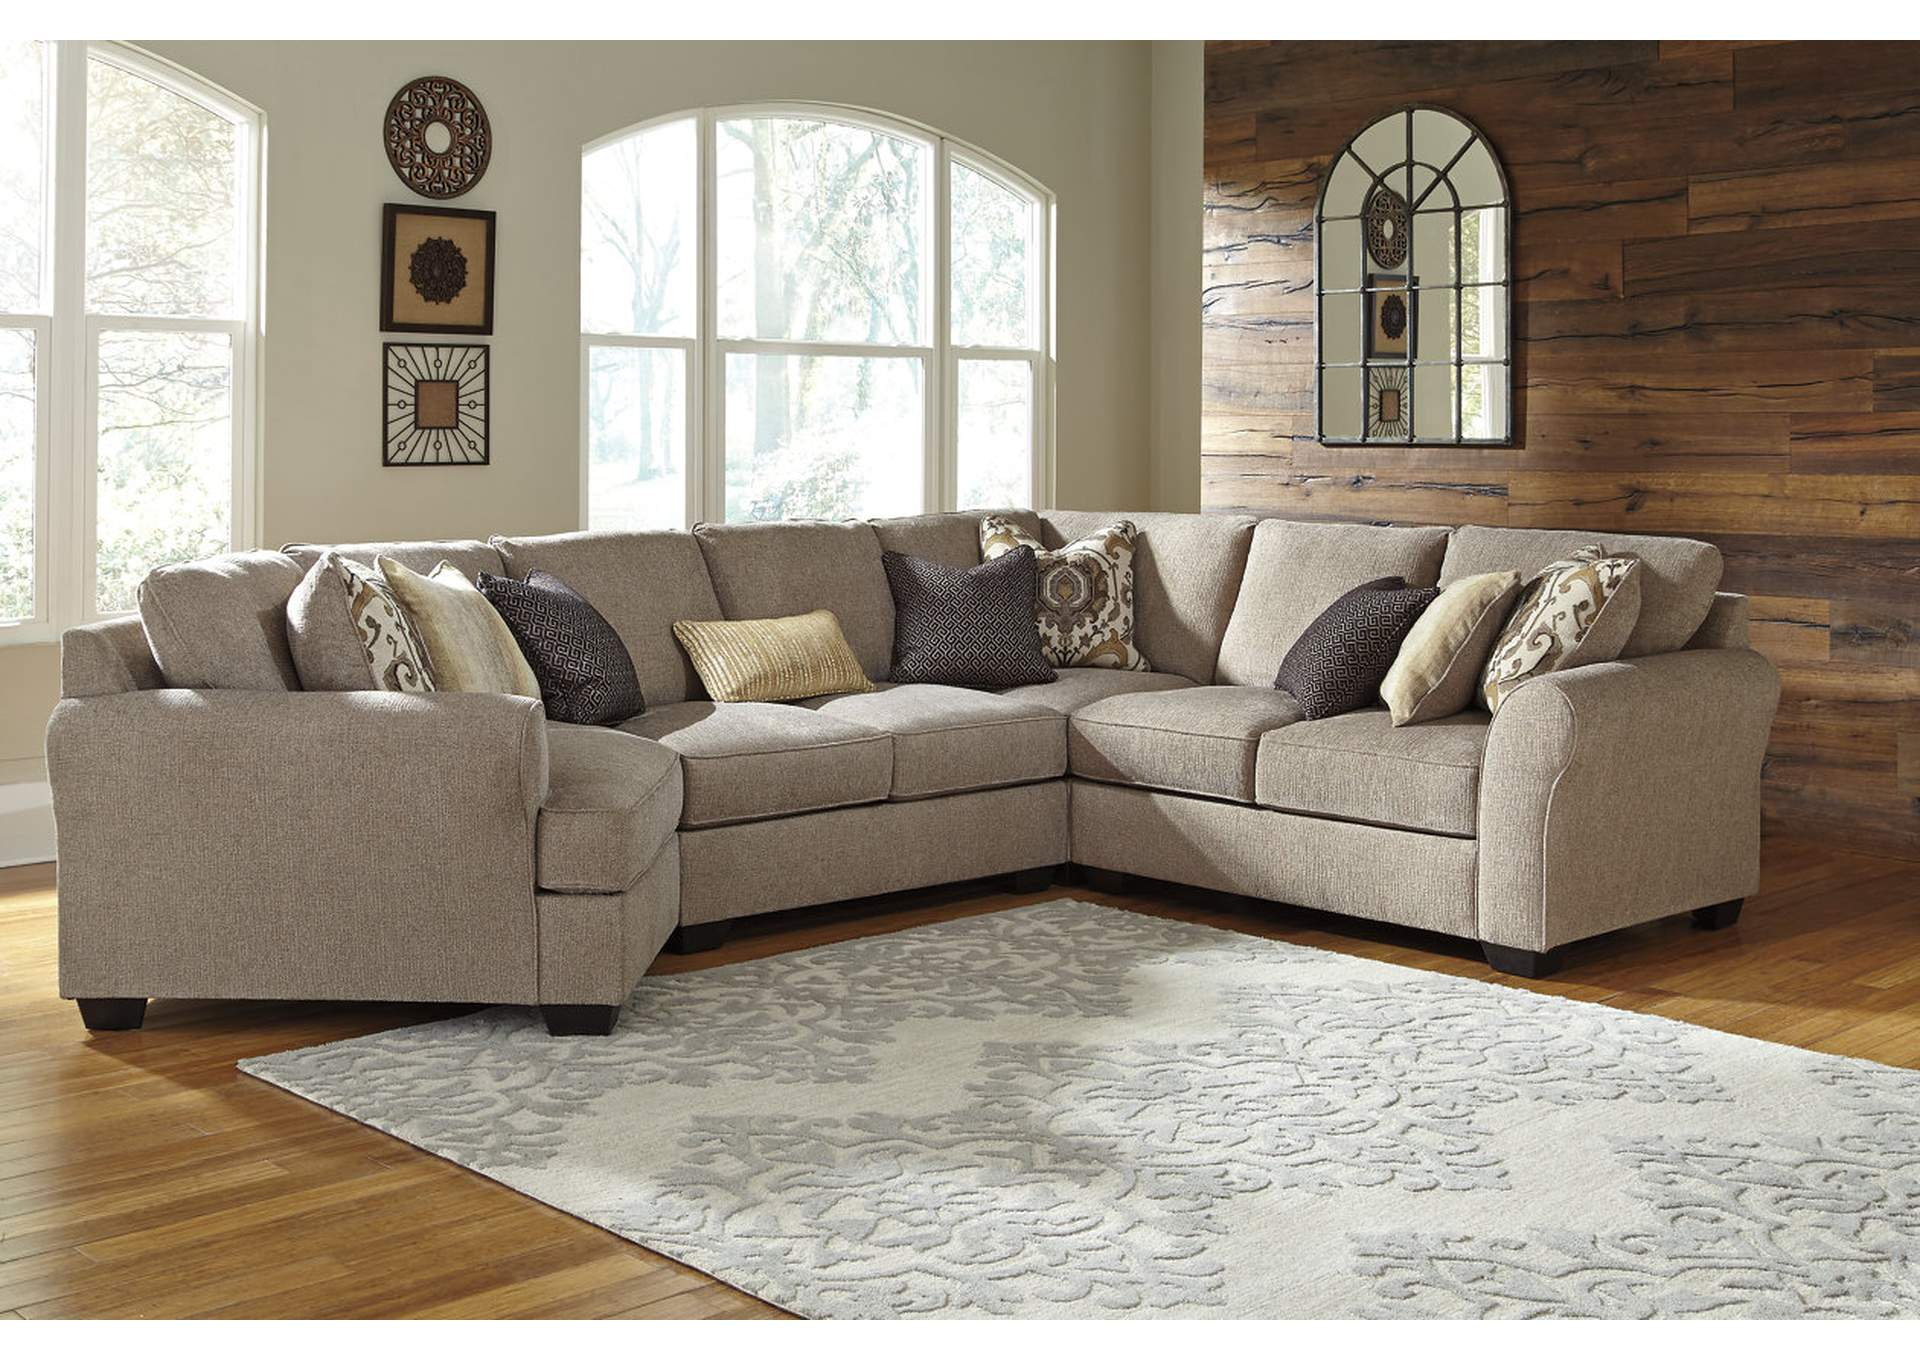 Best Of Floor sofa Bed  Ideas